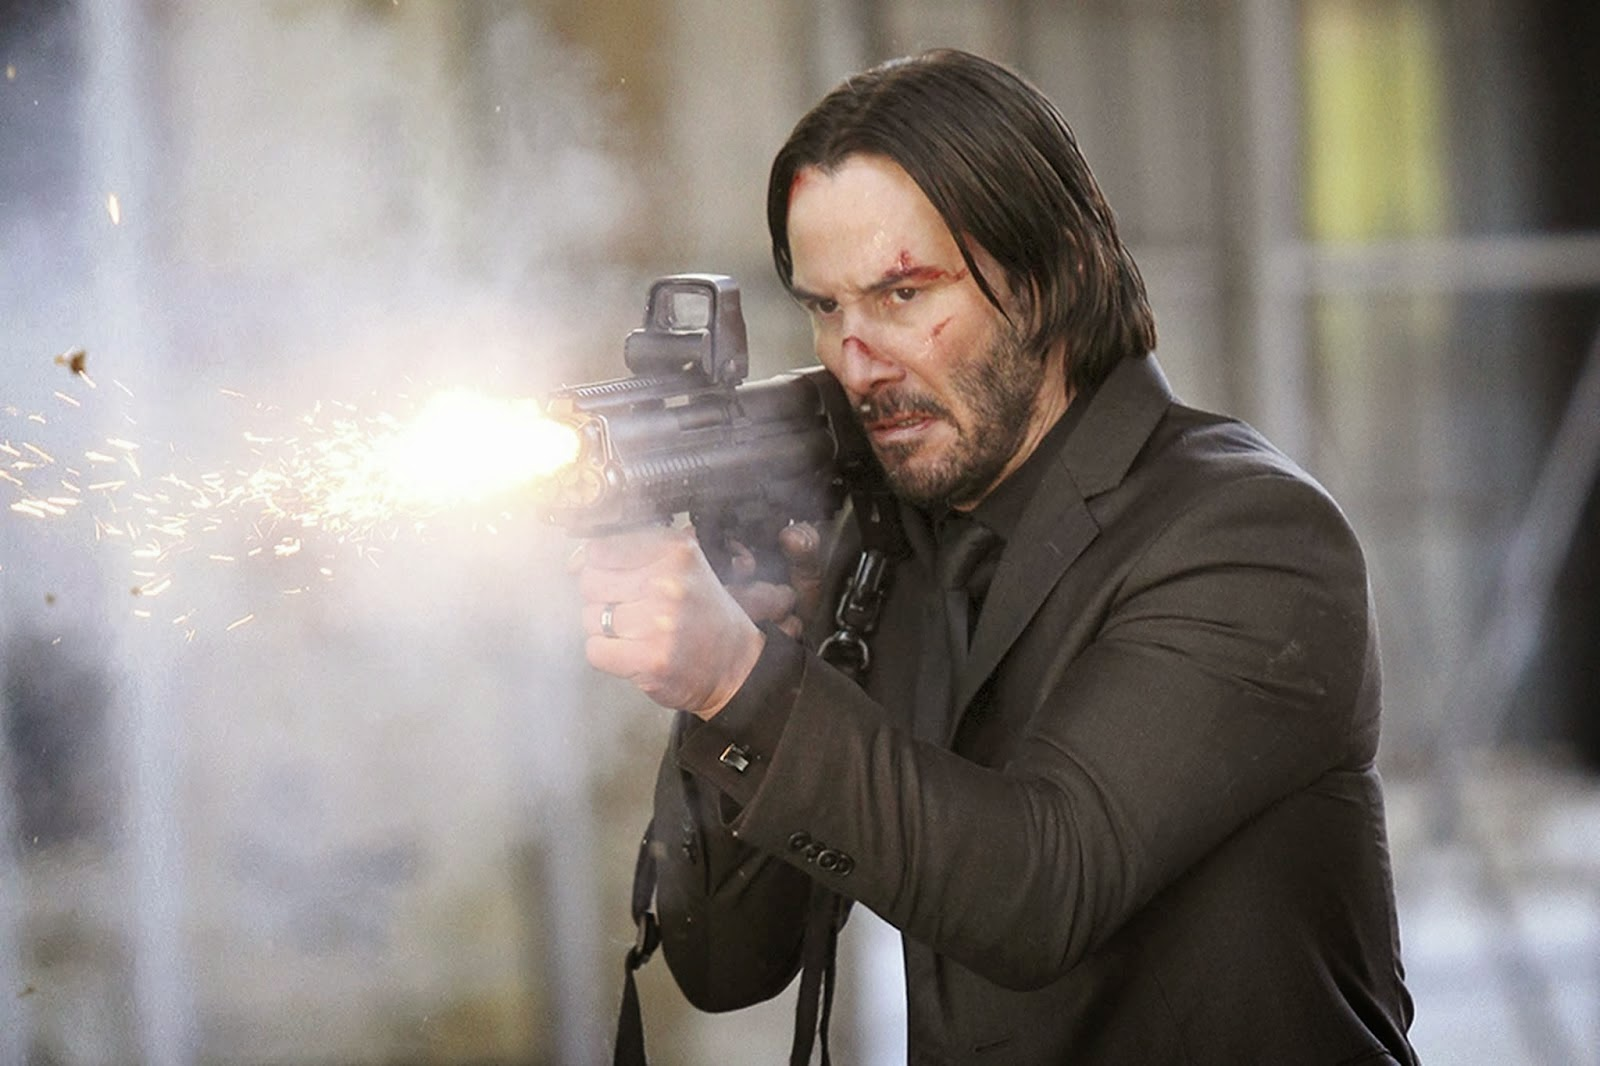 Watch Movie John Wick Full Movie